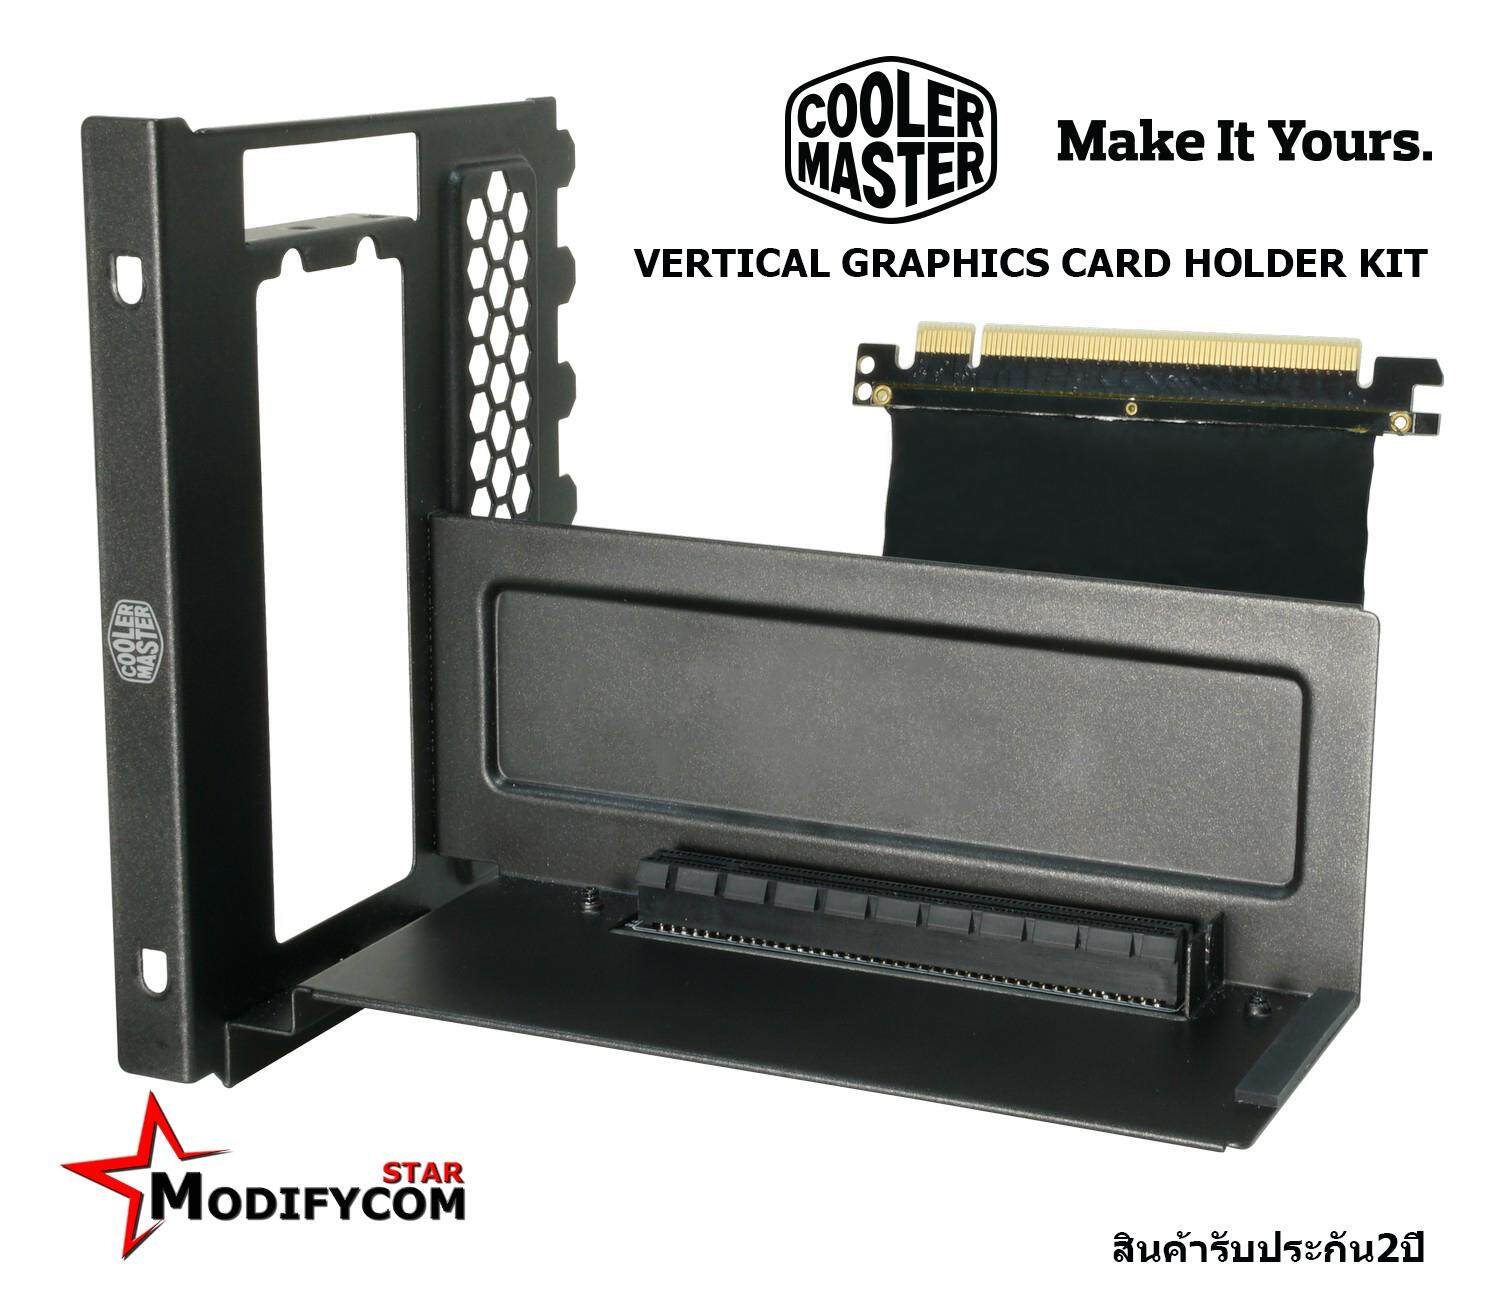 Cooler Master VERTICAL GRAPHICS CARD HOLDER KIT WITH RISER CABLE